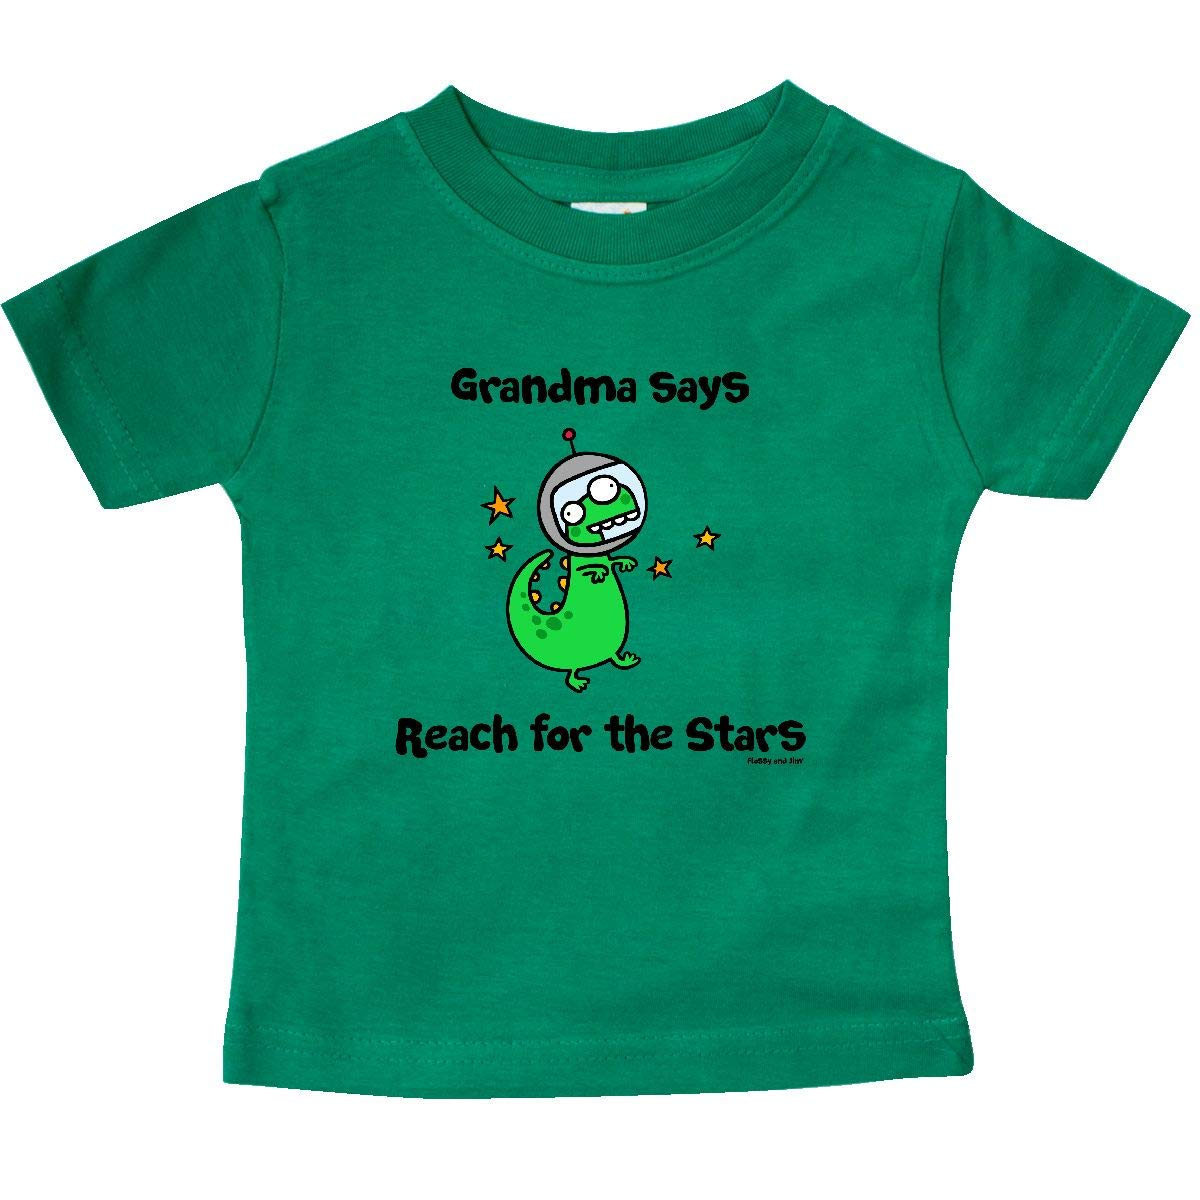 inktastic Grandma Says Reach for The Stars Baby T-Shirt Flossy and Jim